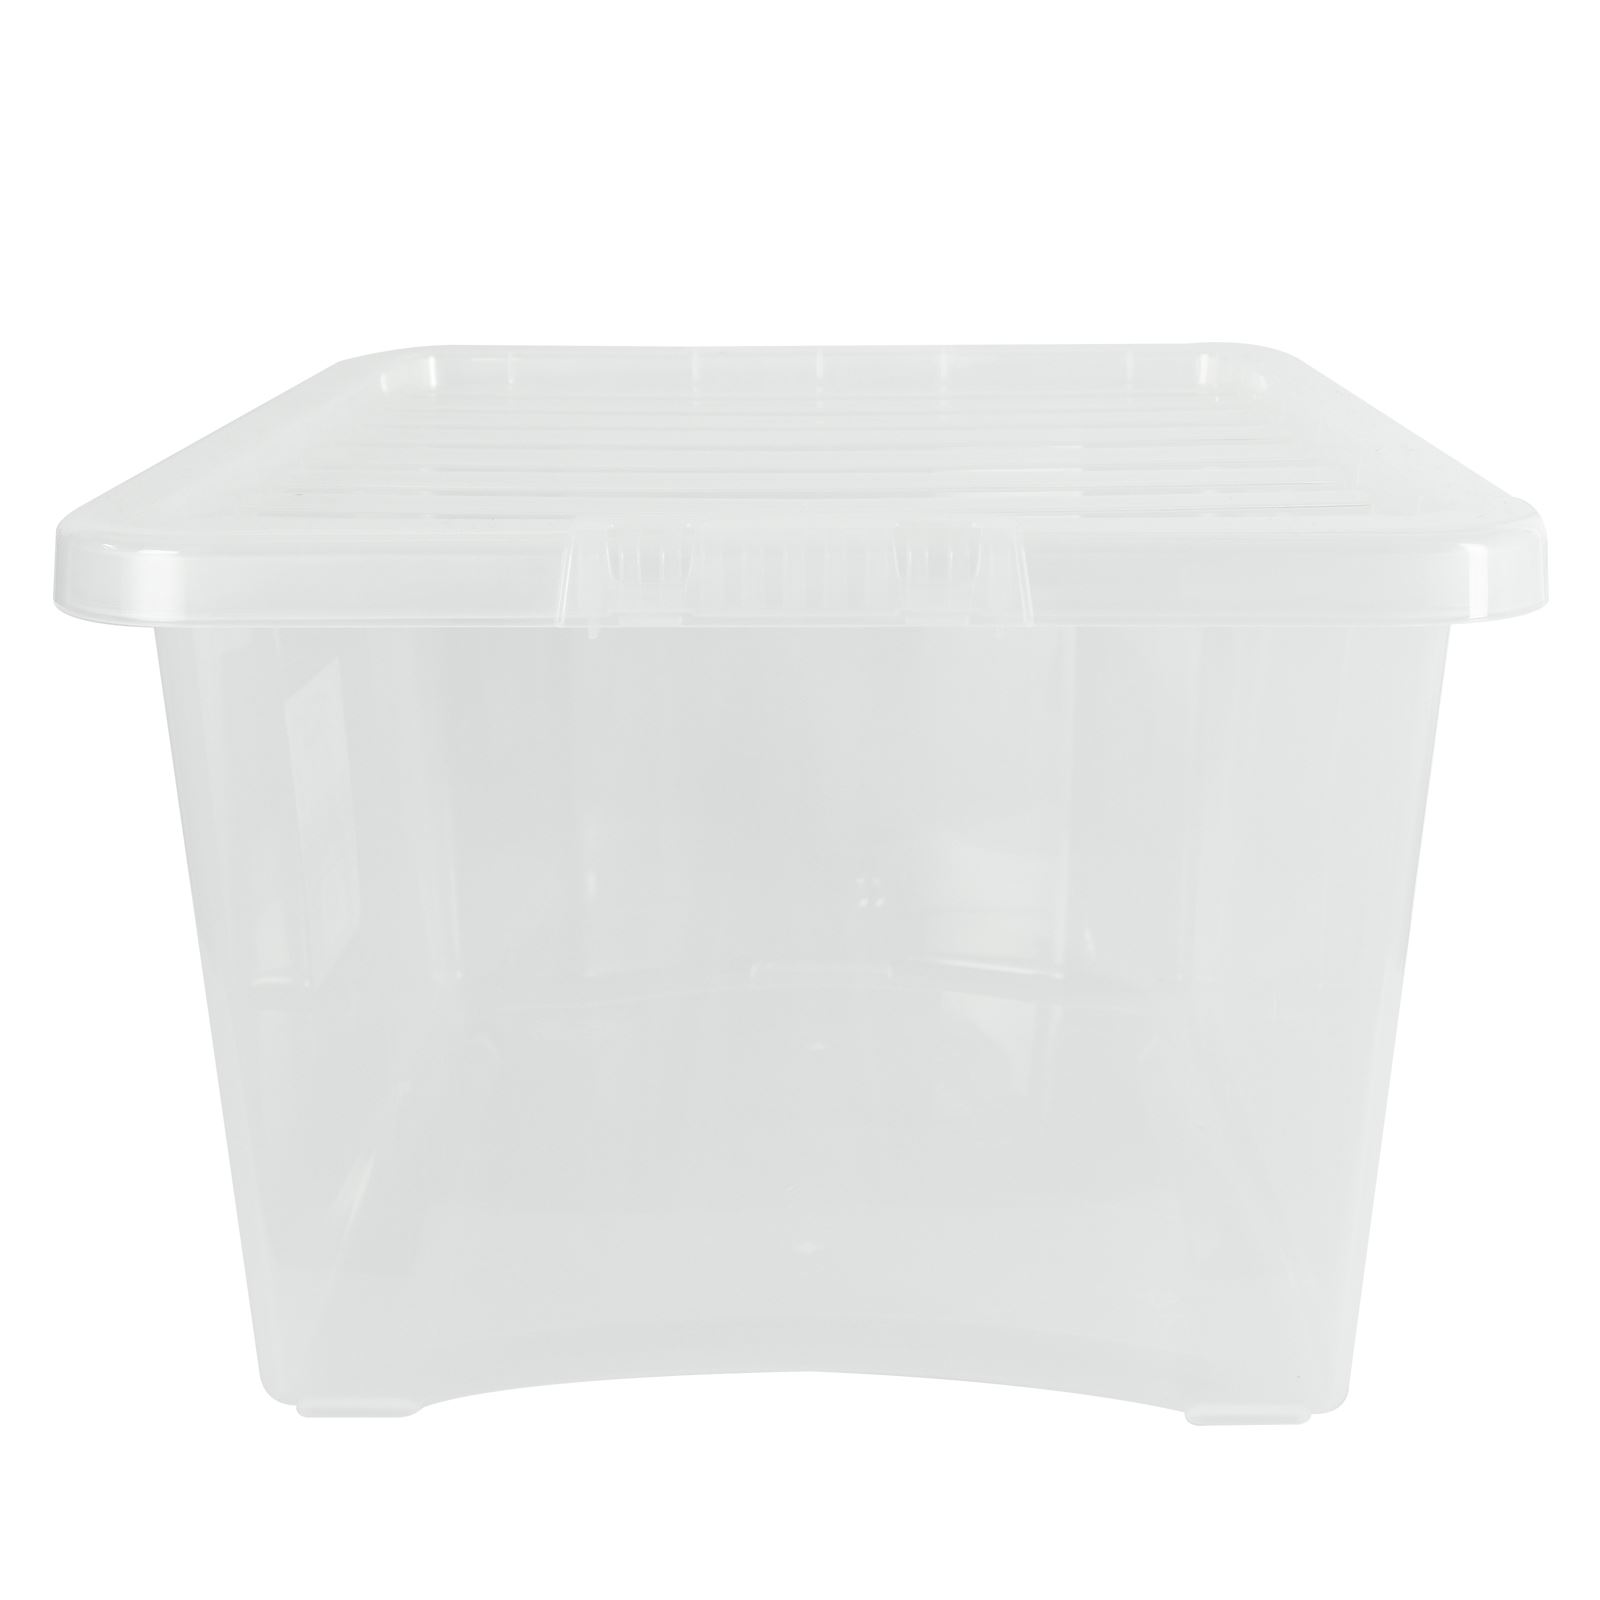 Wham-Crystal-Clear-Plastic-Storage-Box-Secure-Clip-on-Lid-Under-Bed-Space-Save thumbnail 30